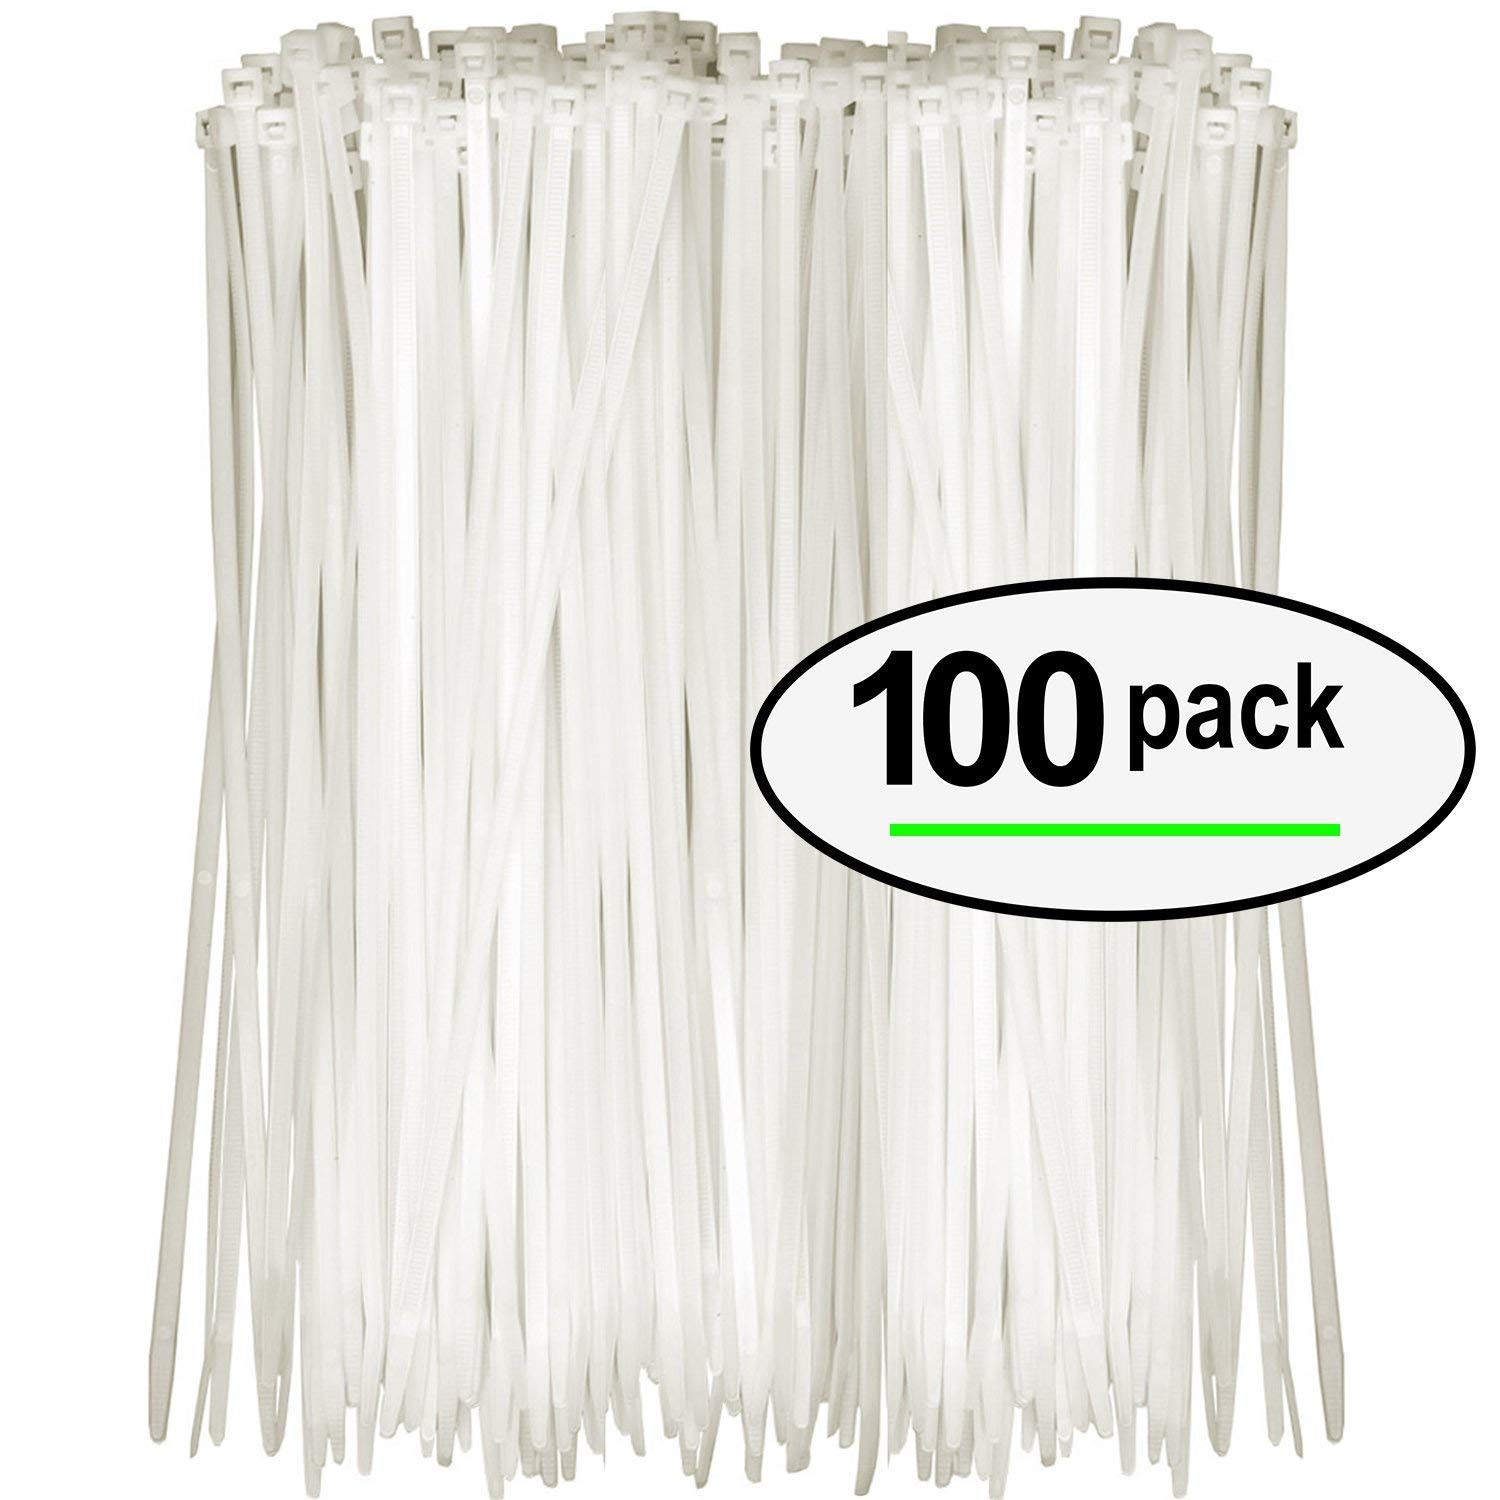 Tarvol Nylon Zip Ties (Pack of 100) 8 Inch with Self Locking Cable Ties (White) sd027